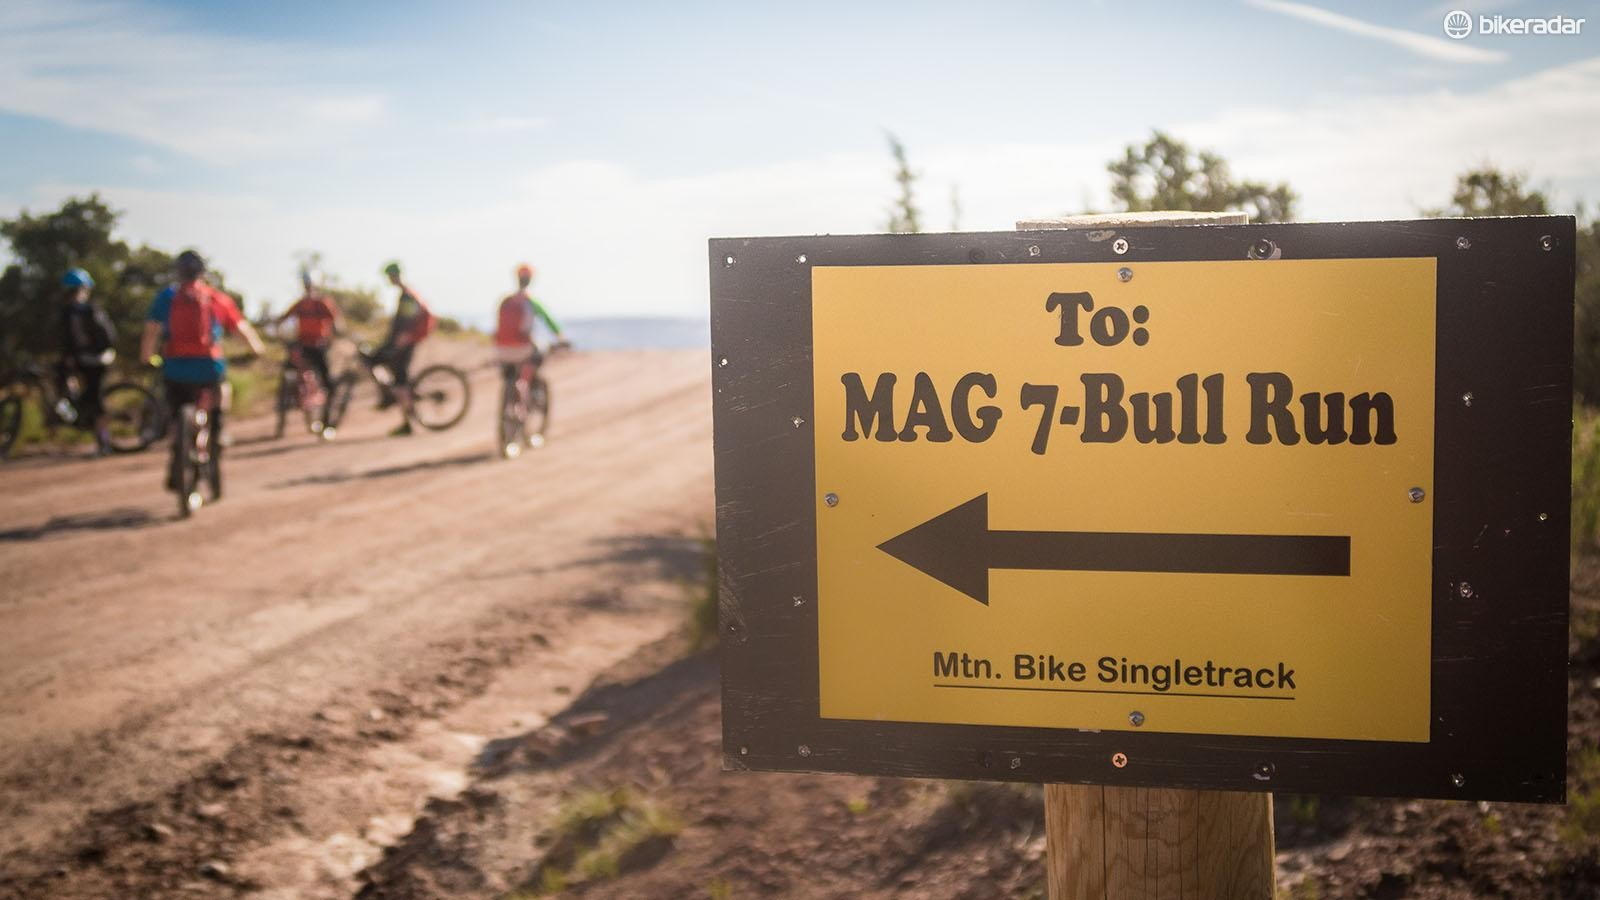 We spent two days testing the Mach 5.5 Carbon on some of the finest trails in United States